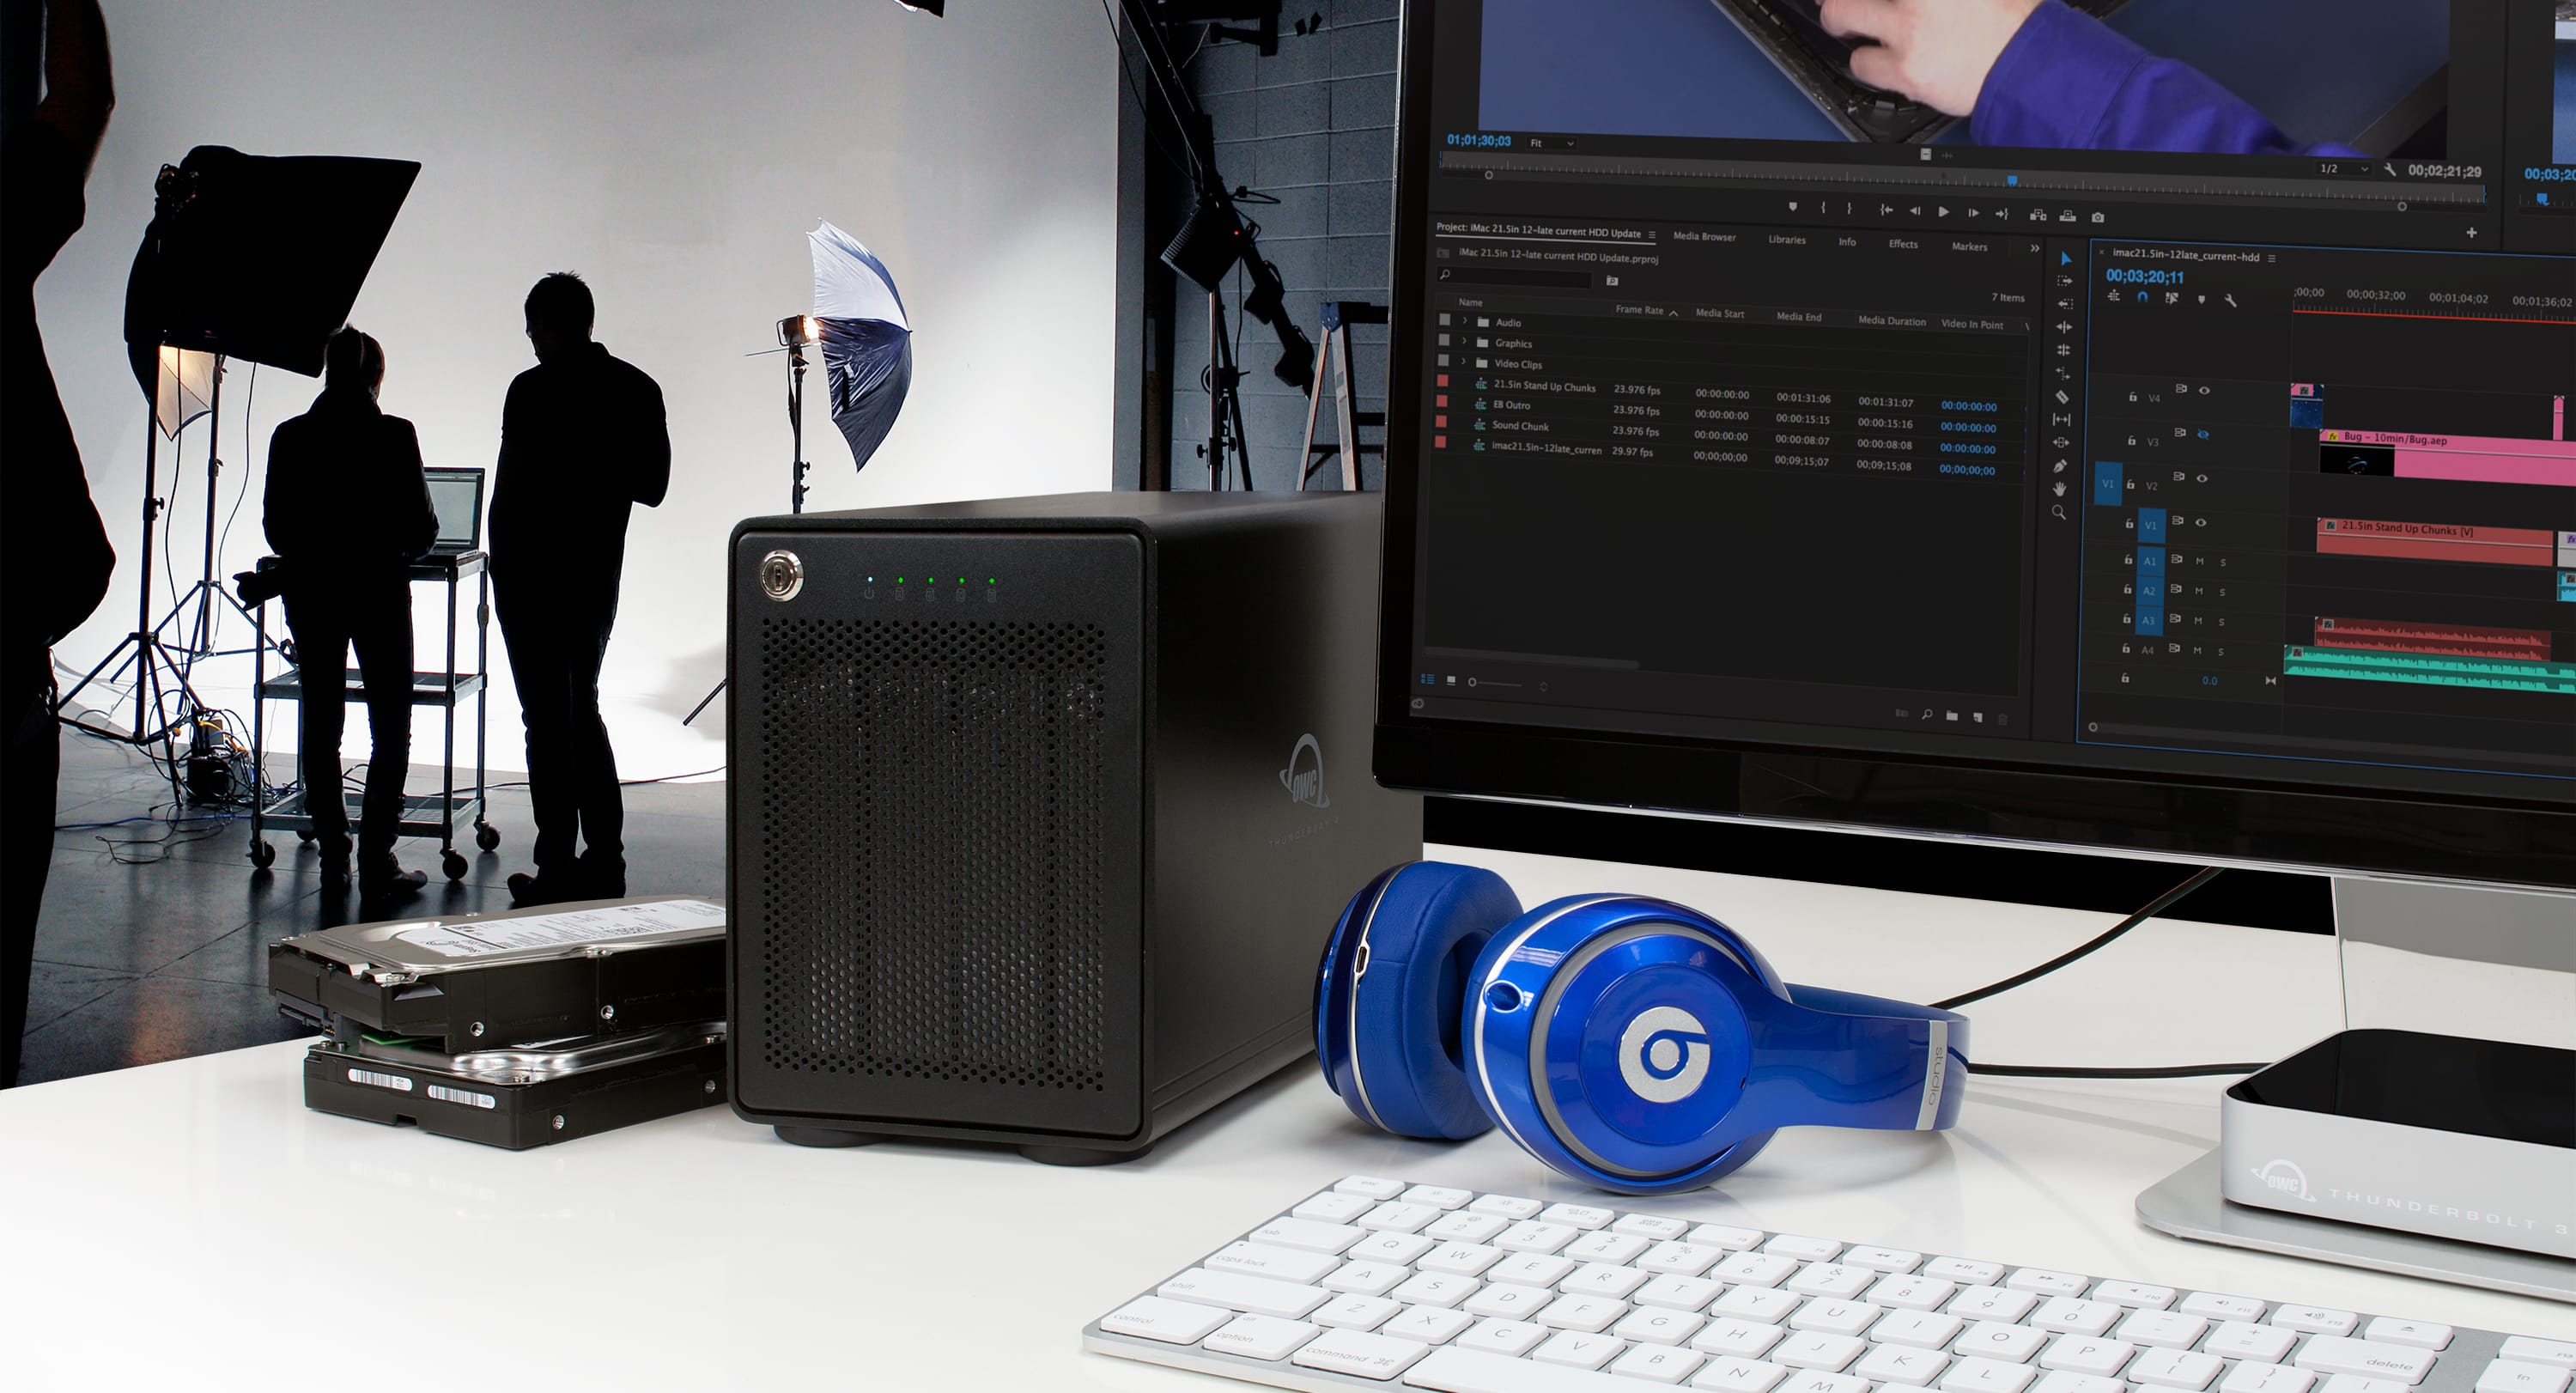 OWC ThunderBay 4 with Thunderbolt 2 in Photography Workstation